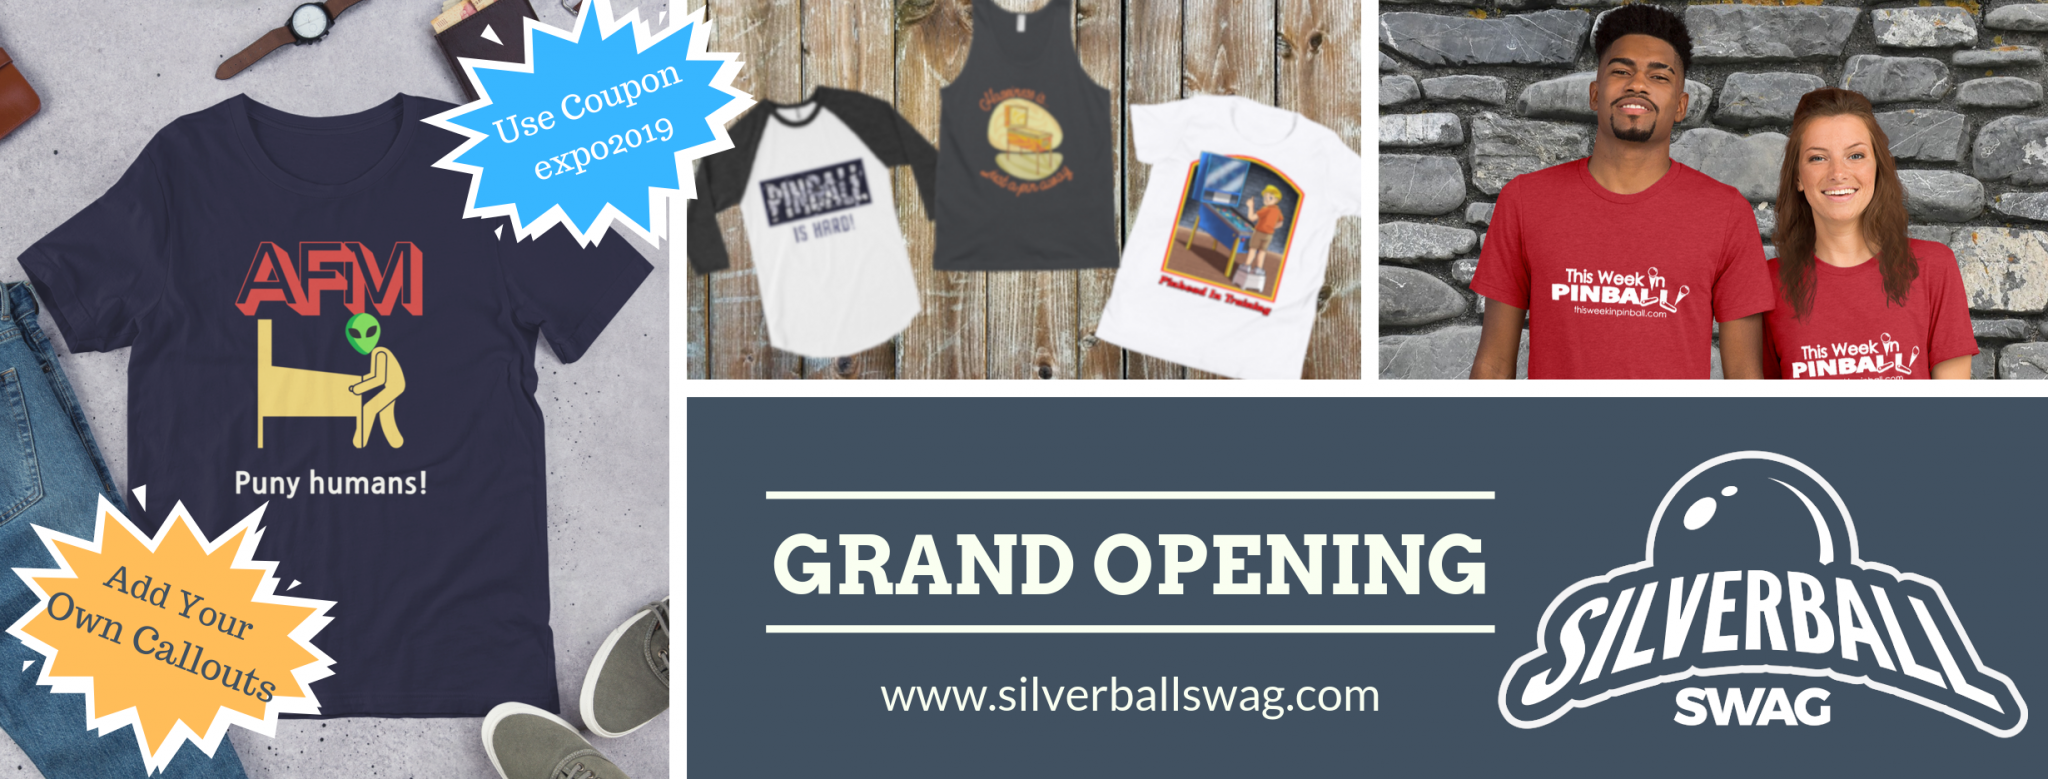 Silverball Swag - Grand Opening